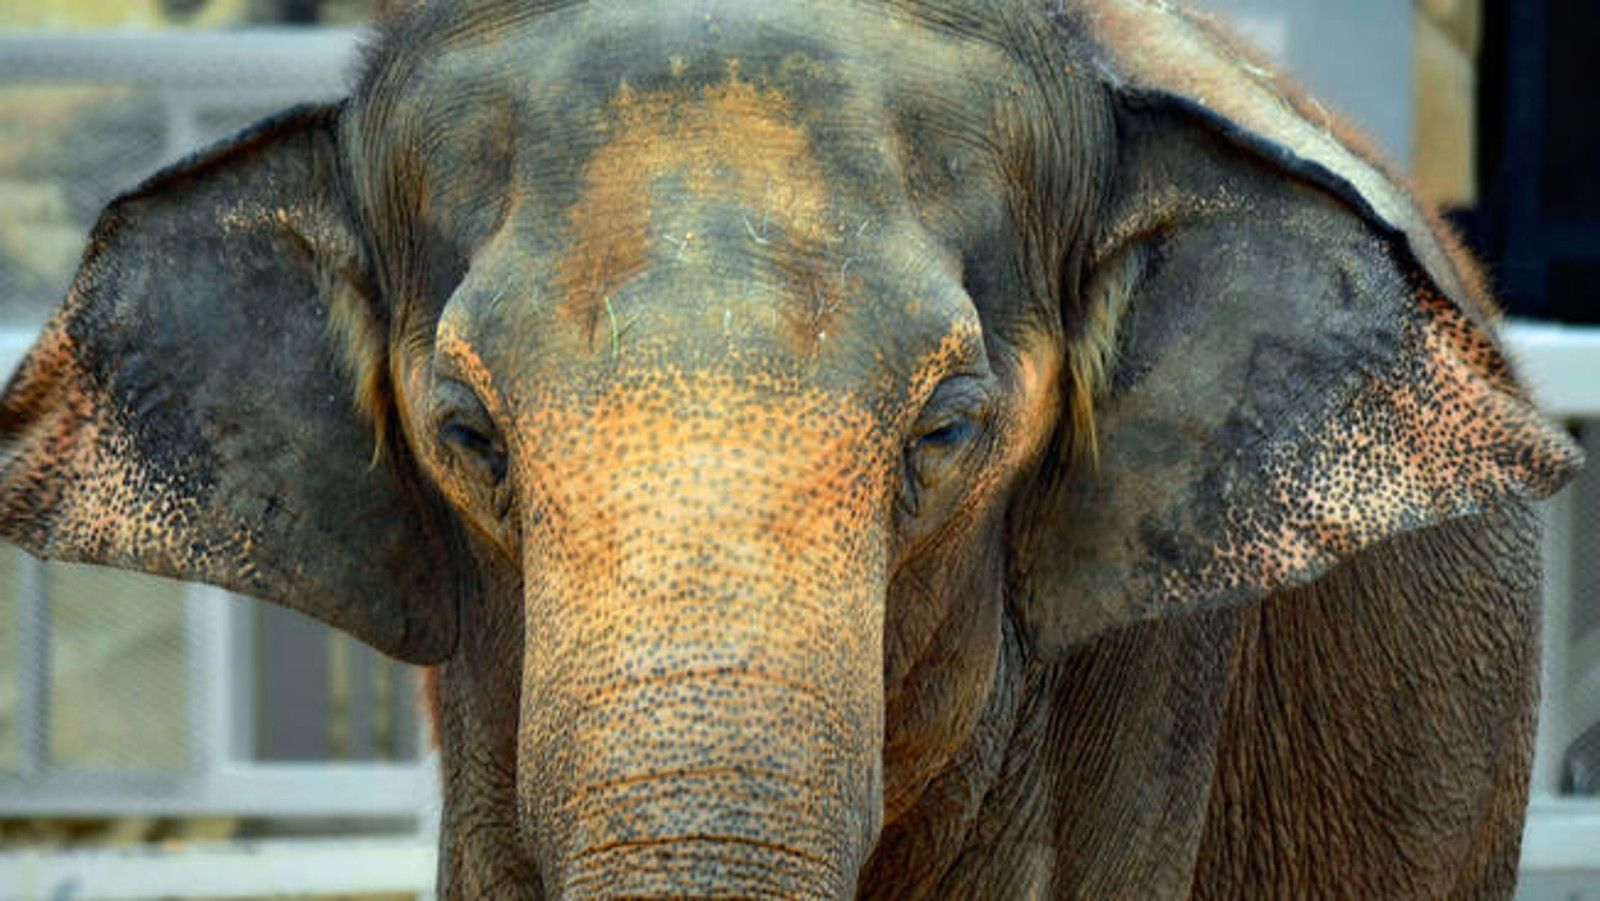 Top 10 Worst Zoos For Elephants…Why in the World Are They